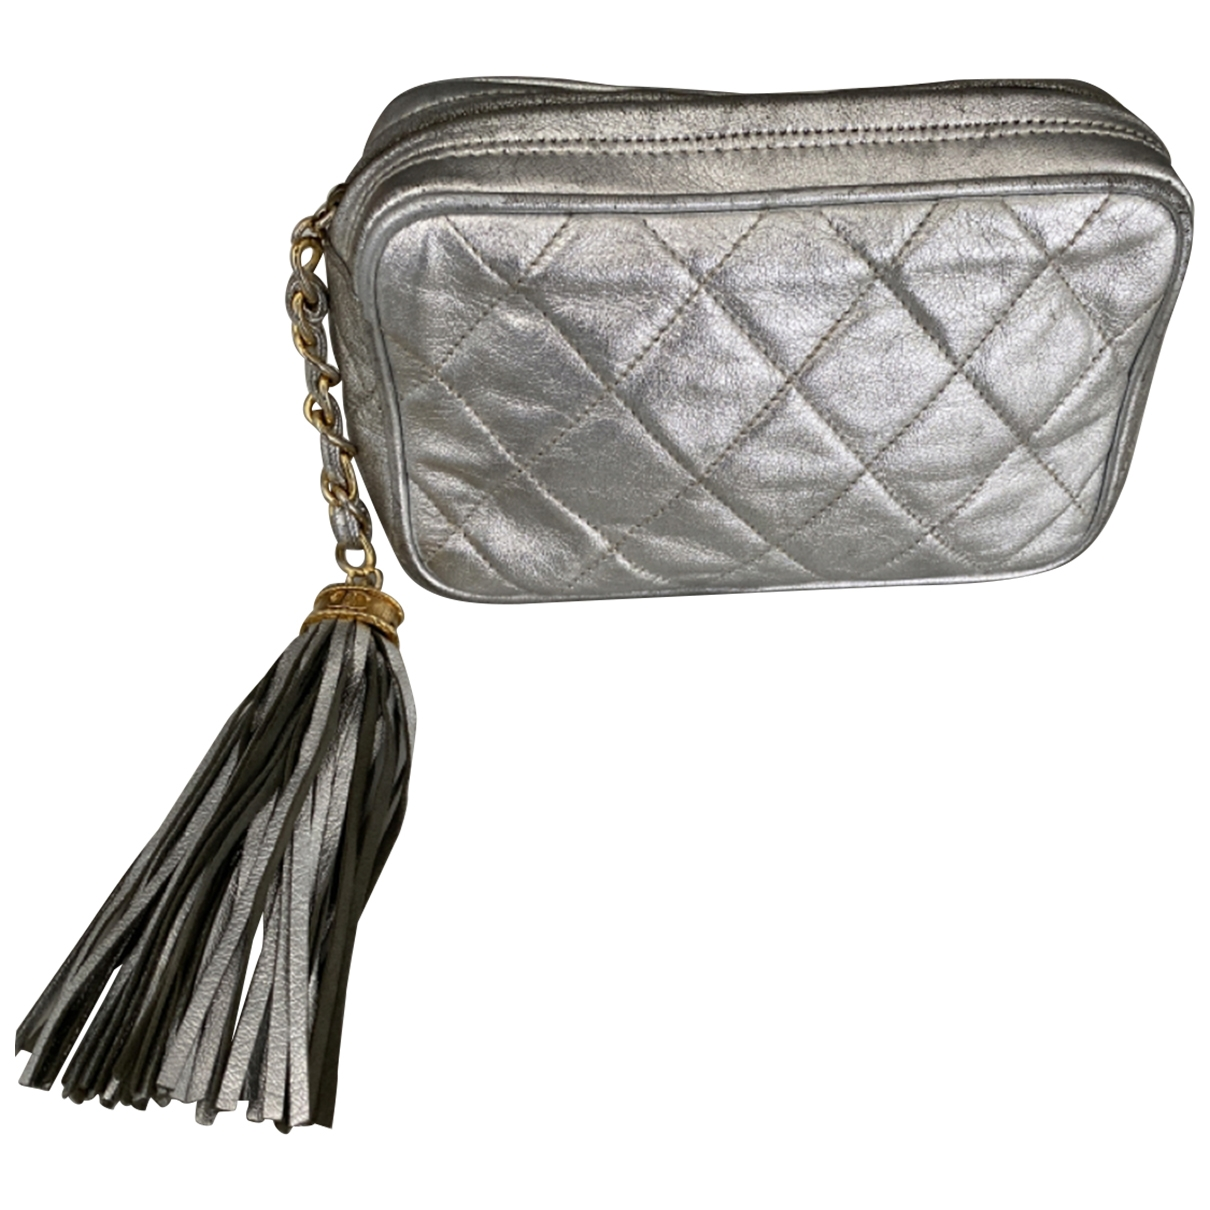 Chanel \N Silver Leather Clutch bag for Women \N